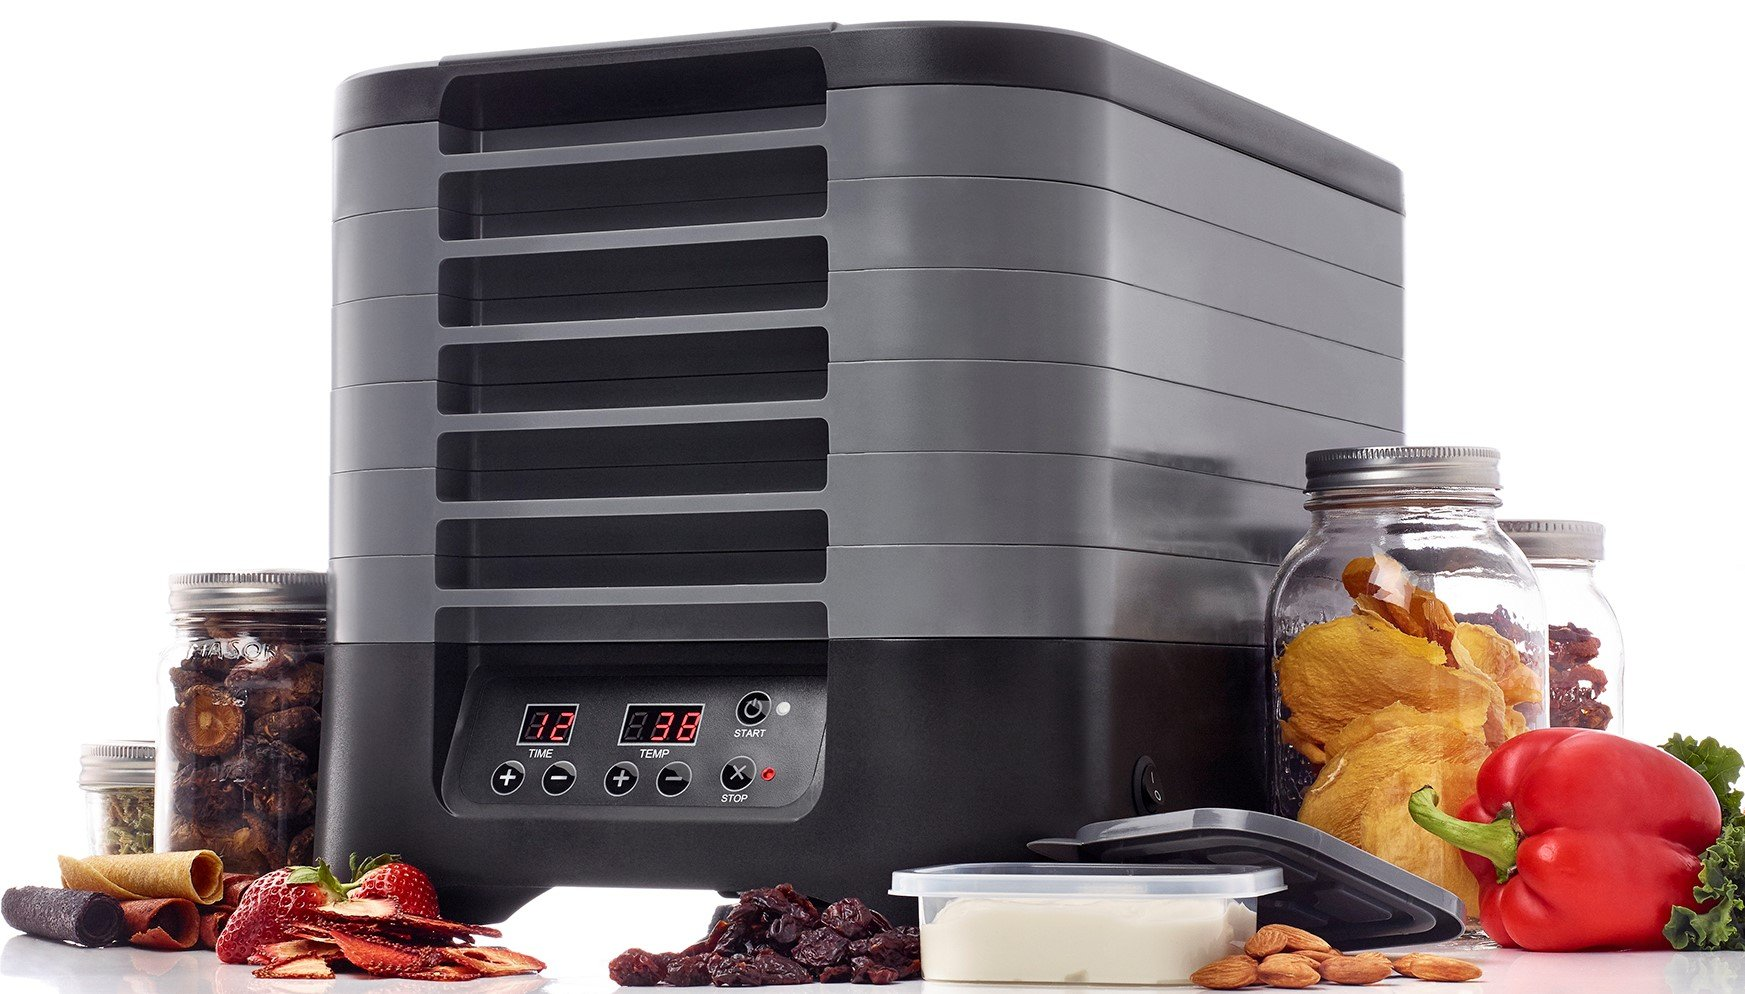 Excalibur STL60B STS60B Stackable Electric Food Dehydrator with Digital Control Featuring 48-Hour Timer Includes Mesh Screens Yogurt Cups and Drying Sheets, Gray